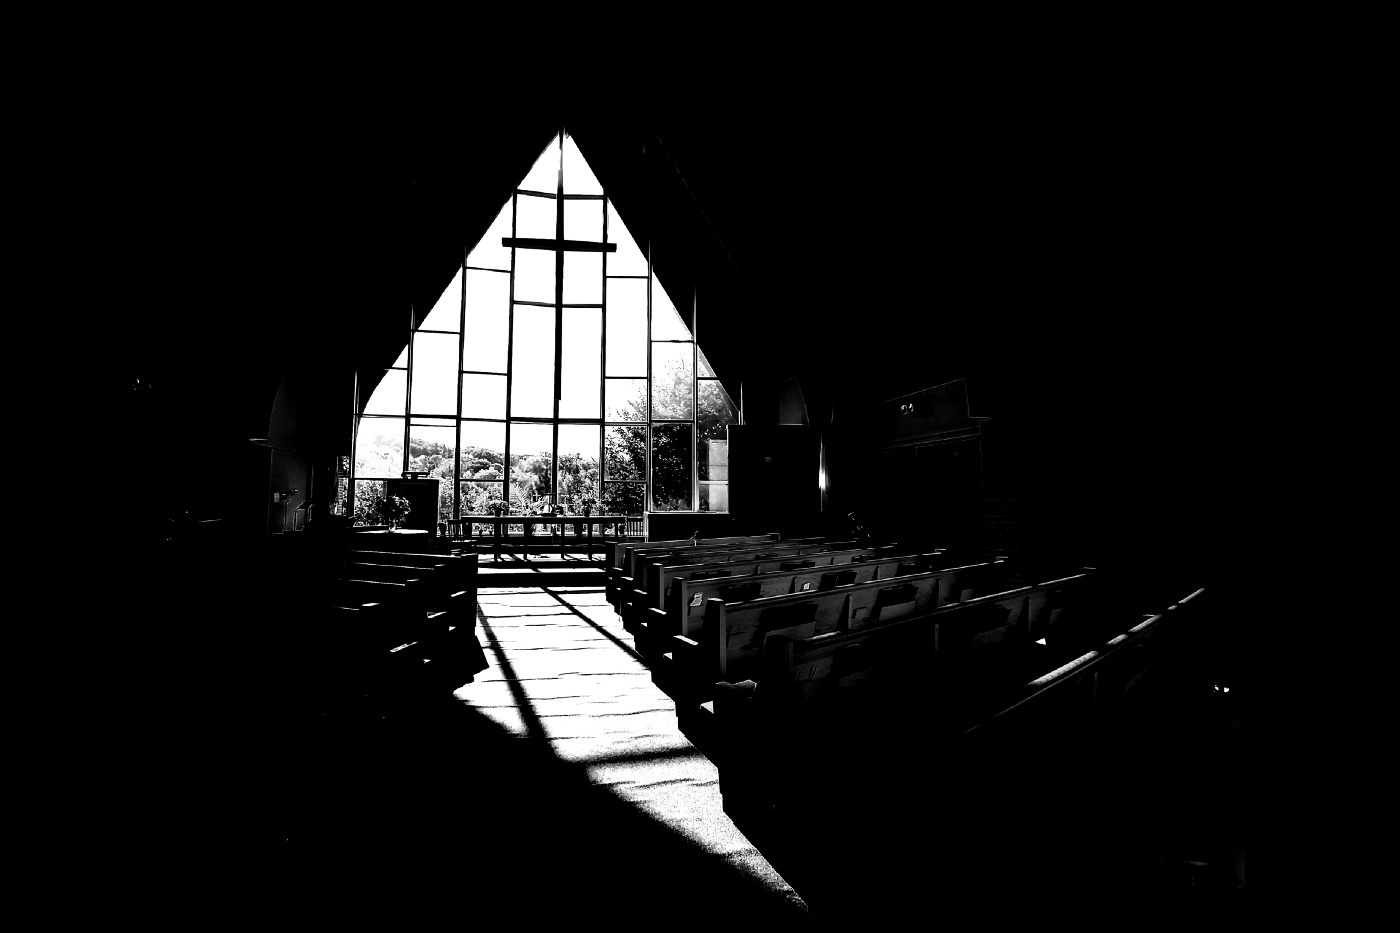 The church in black and white.